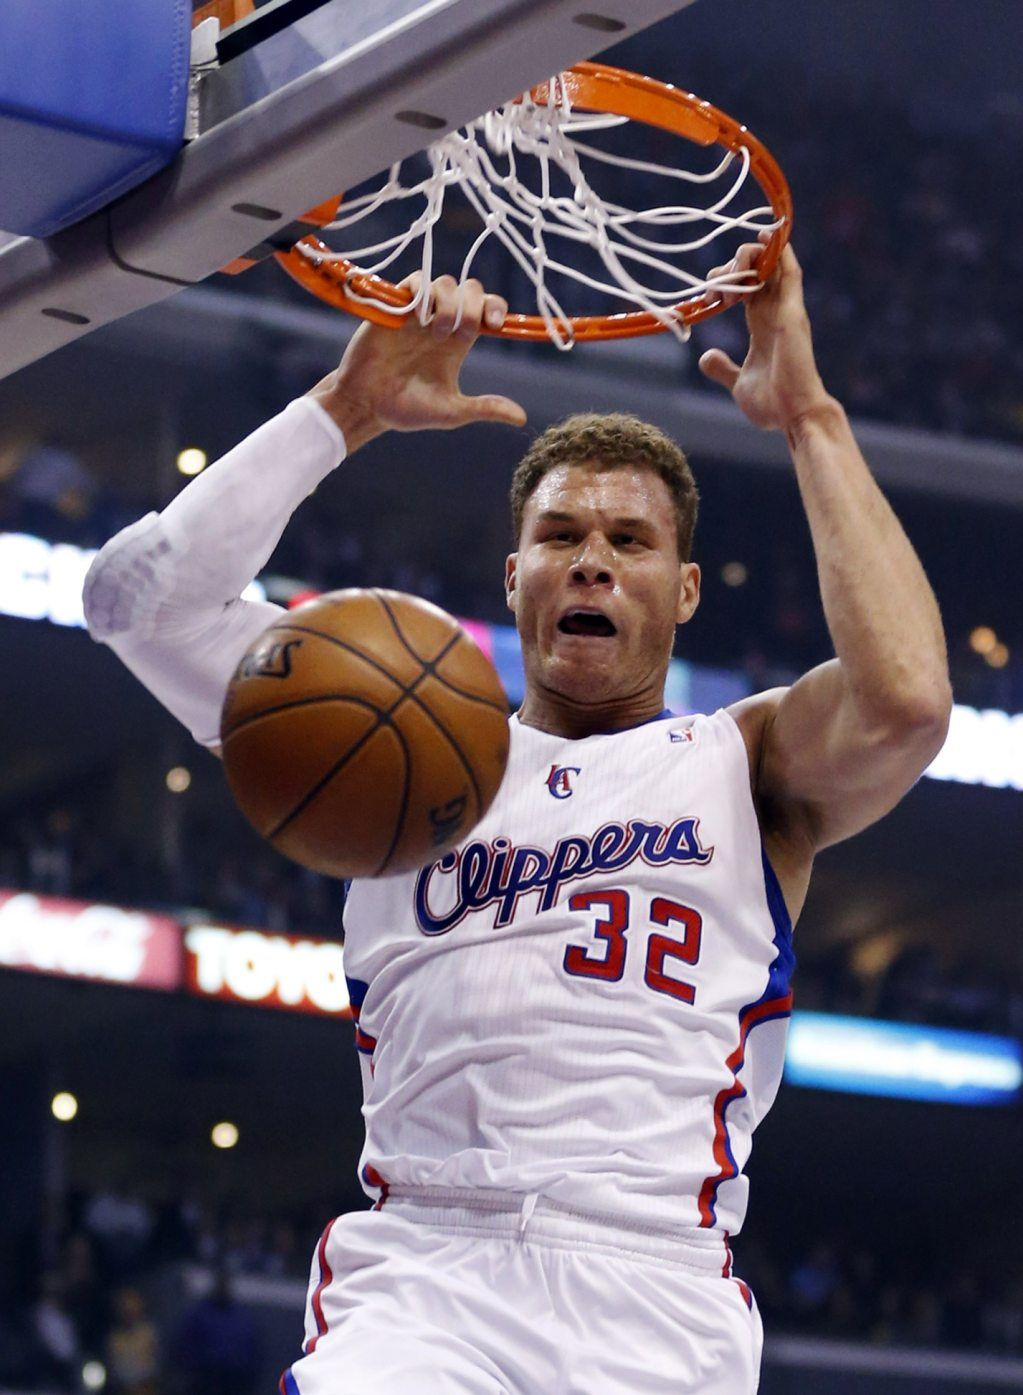 Los Angeles Clippers' Blake Griffin dunks the ball on an alley-oop pass from teammate Chris Paul against the Lakers during the first quarter...